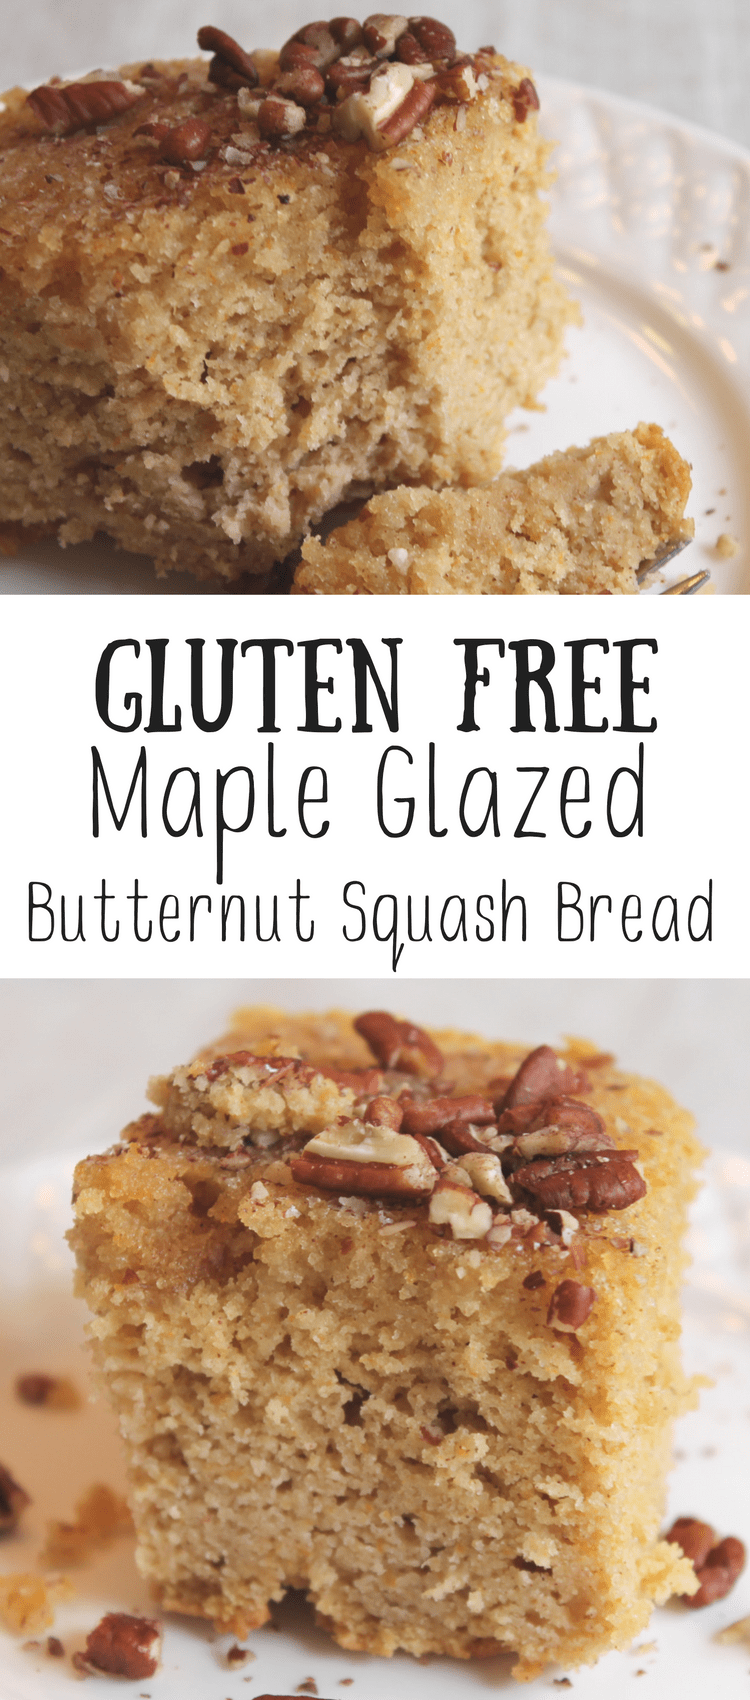 Looking for a great baked bread or cake with a serving of vegetables?  This gluten free maple glazed butternut squash bread is perfect!